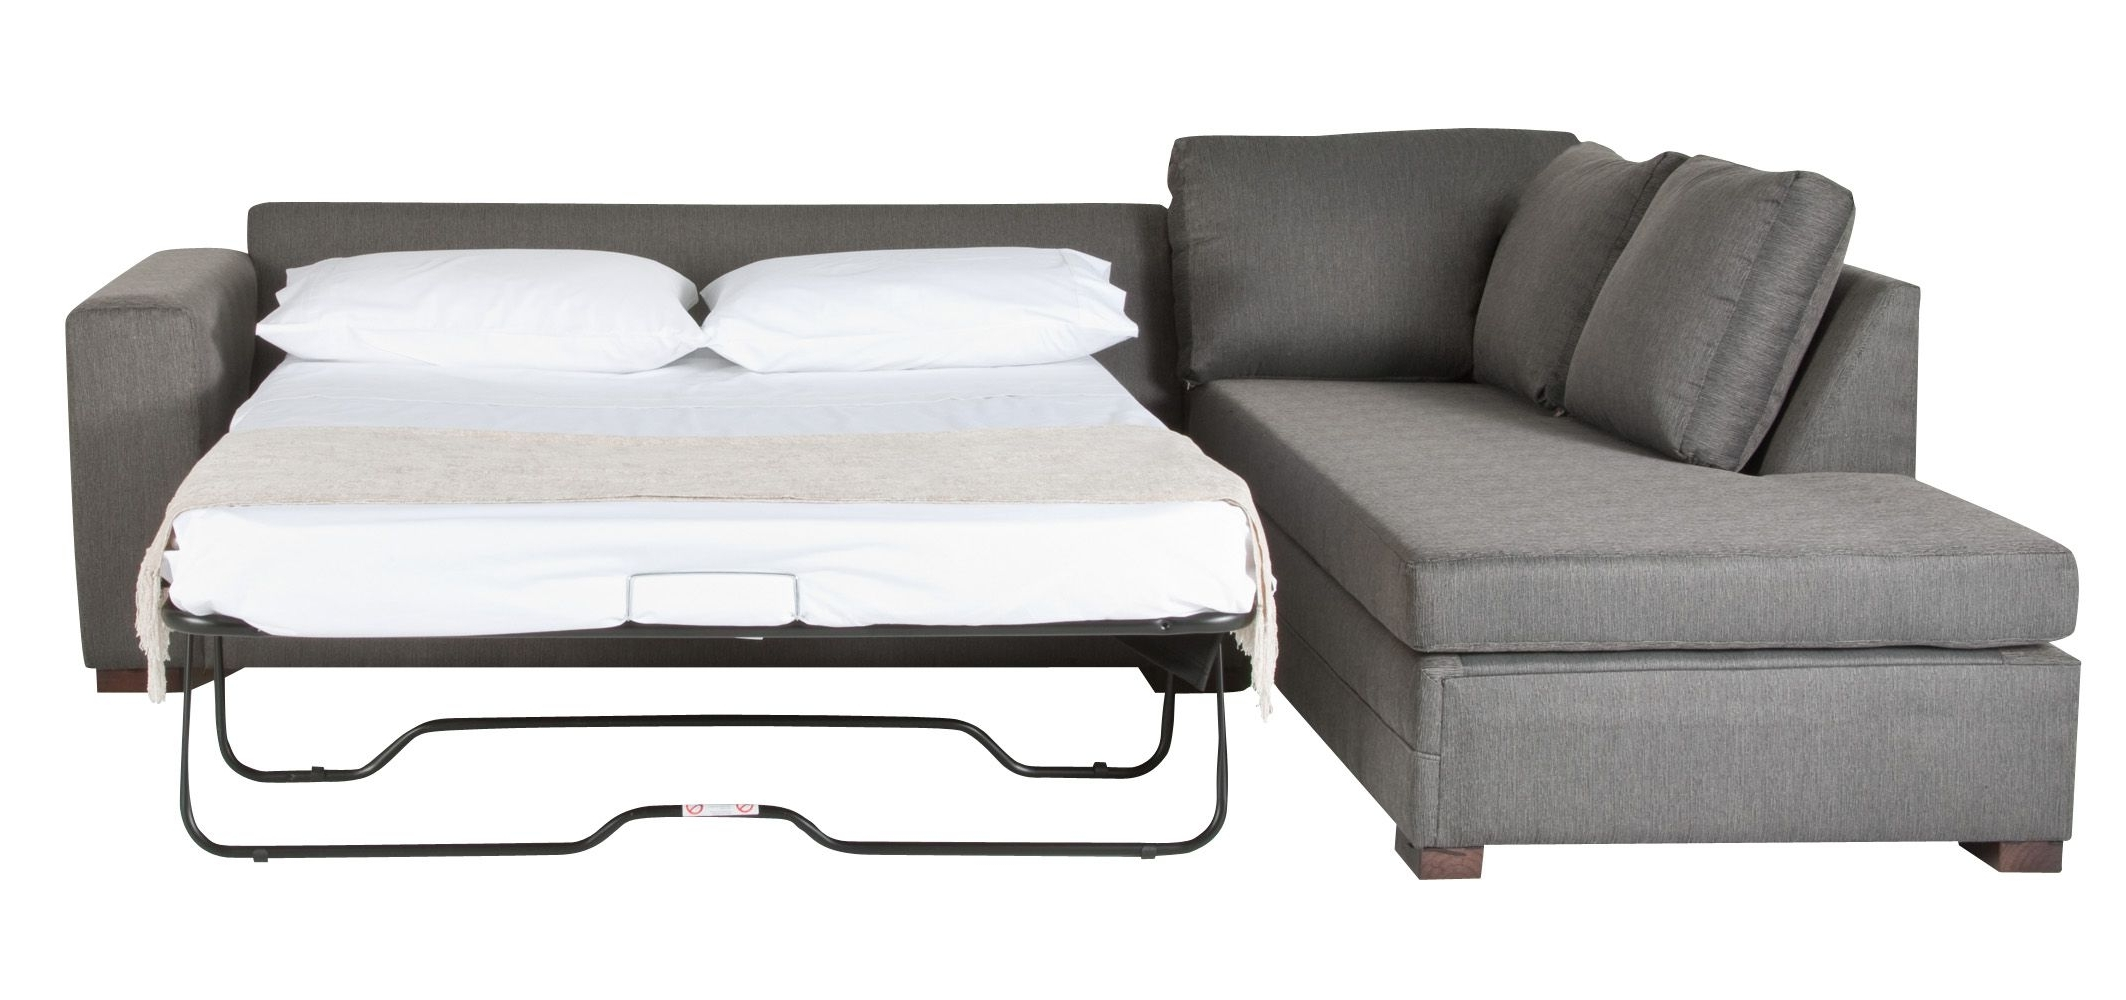 Picturesque Gray Fabric Sleeper Couch With Pull Out Bed White Regarding Most Recent Sectional Sofas With Queen Size Sleeper (View 6 of 15)